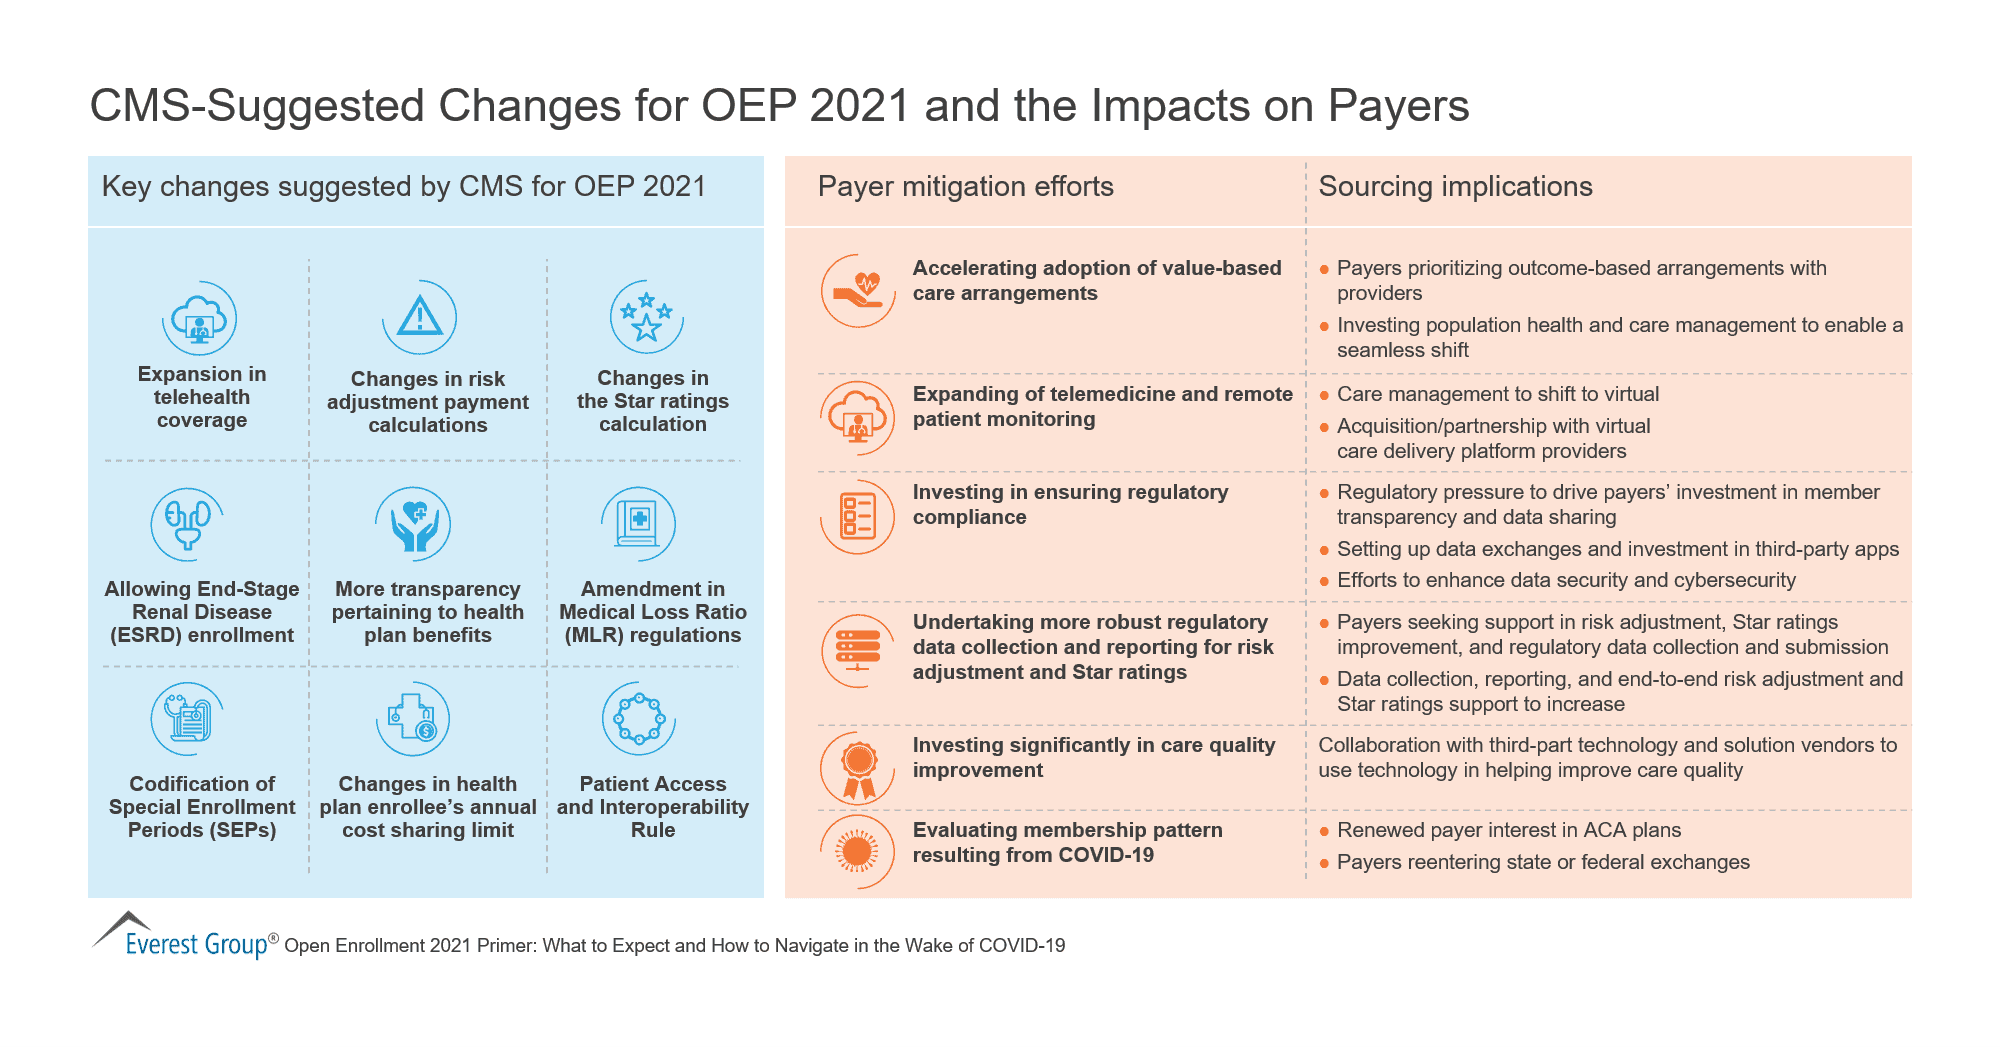 CMS-Suggested Changes for OEP 2021 and the Impacts on Payers